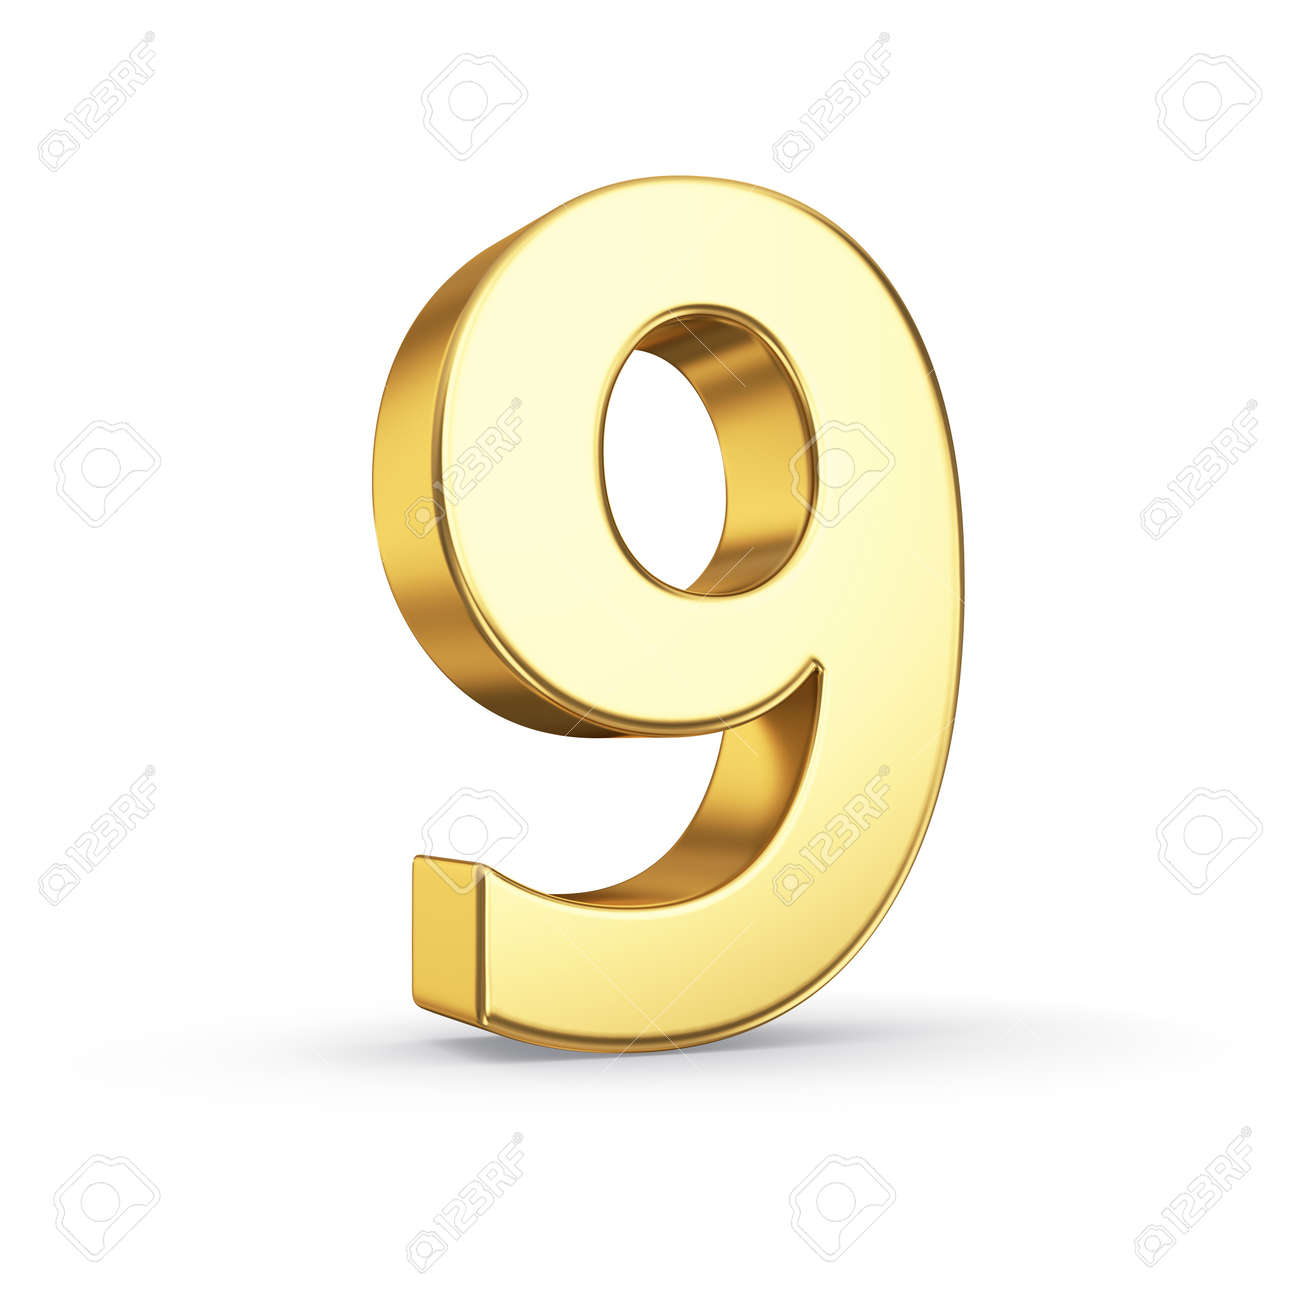 3D golden number 9 - isolated with clipping path Stock Photo - 21092472